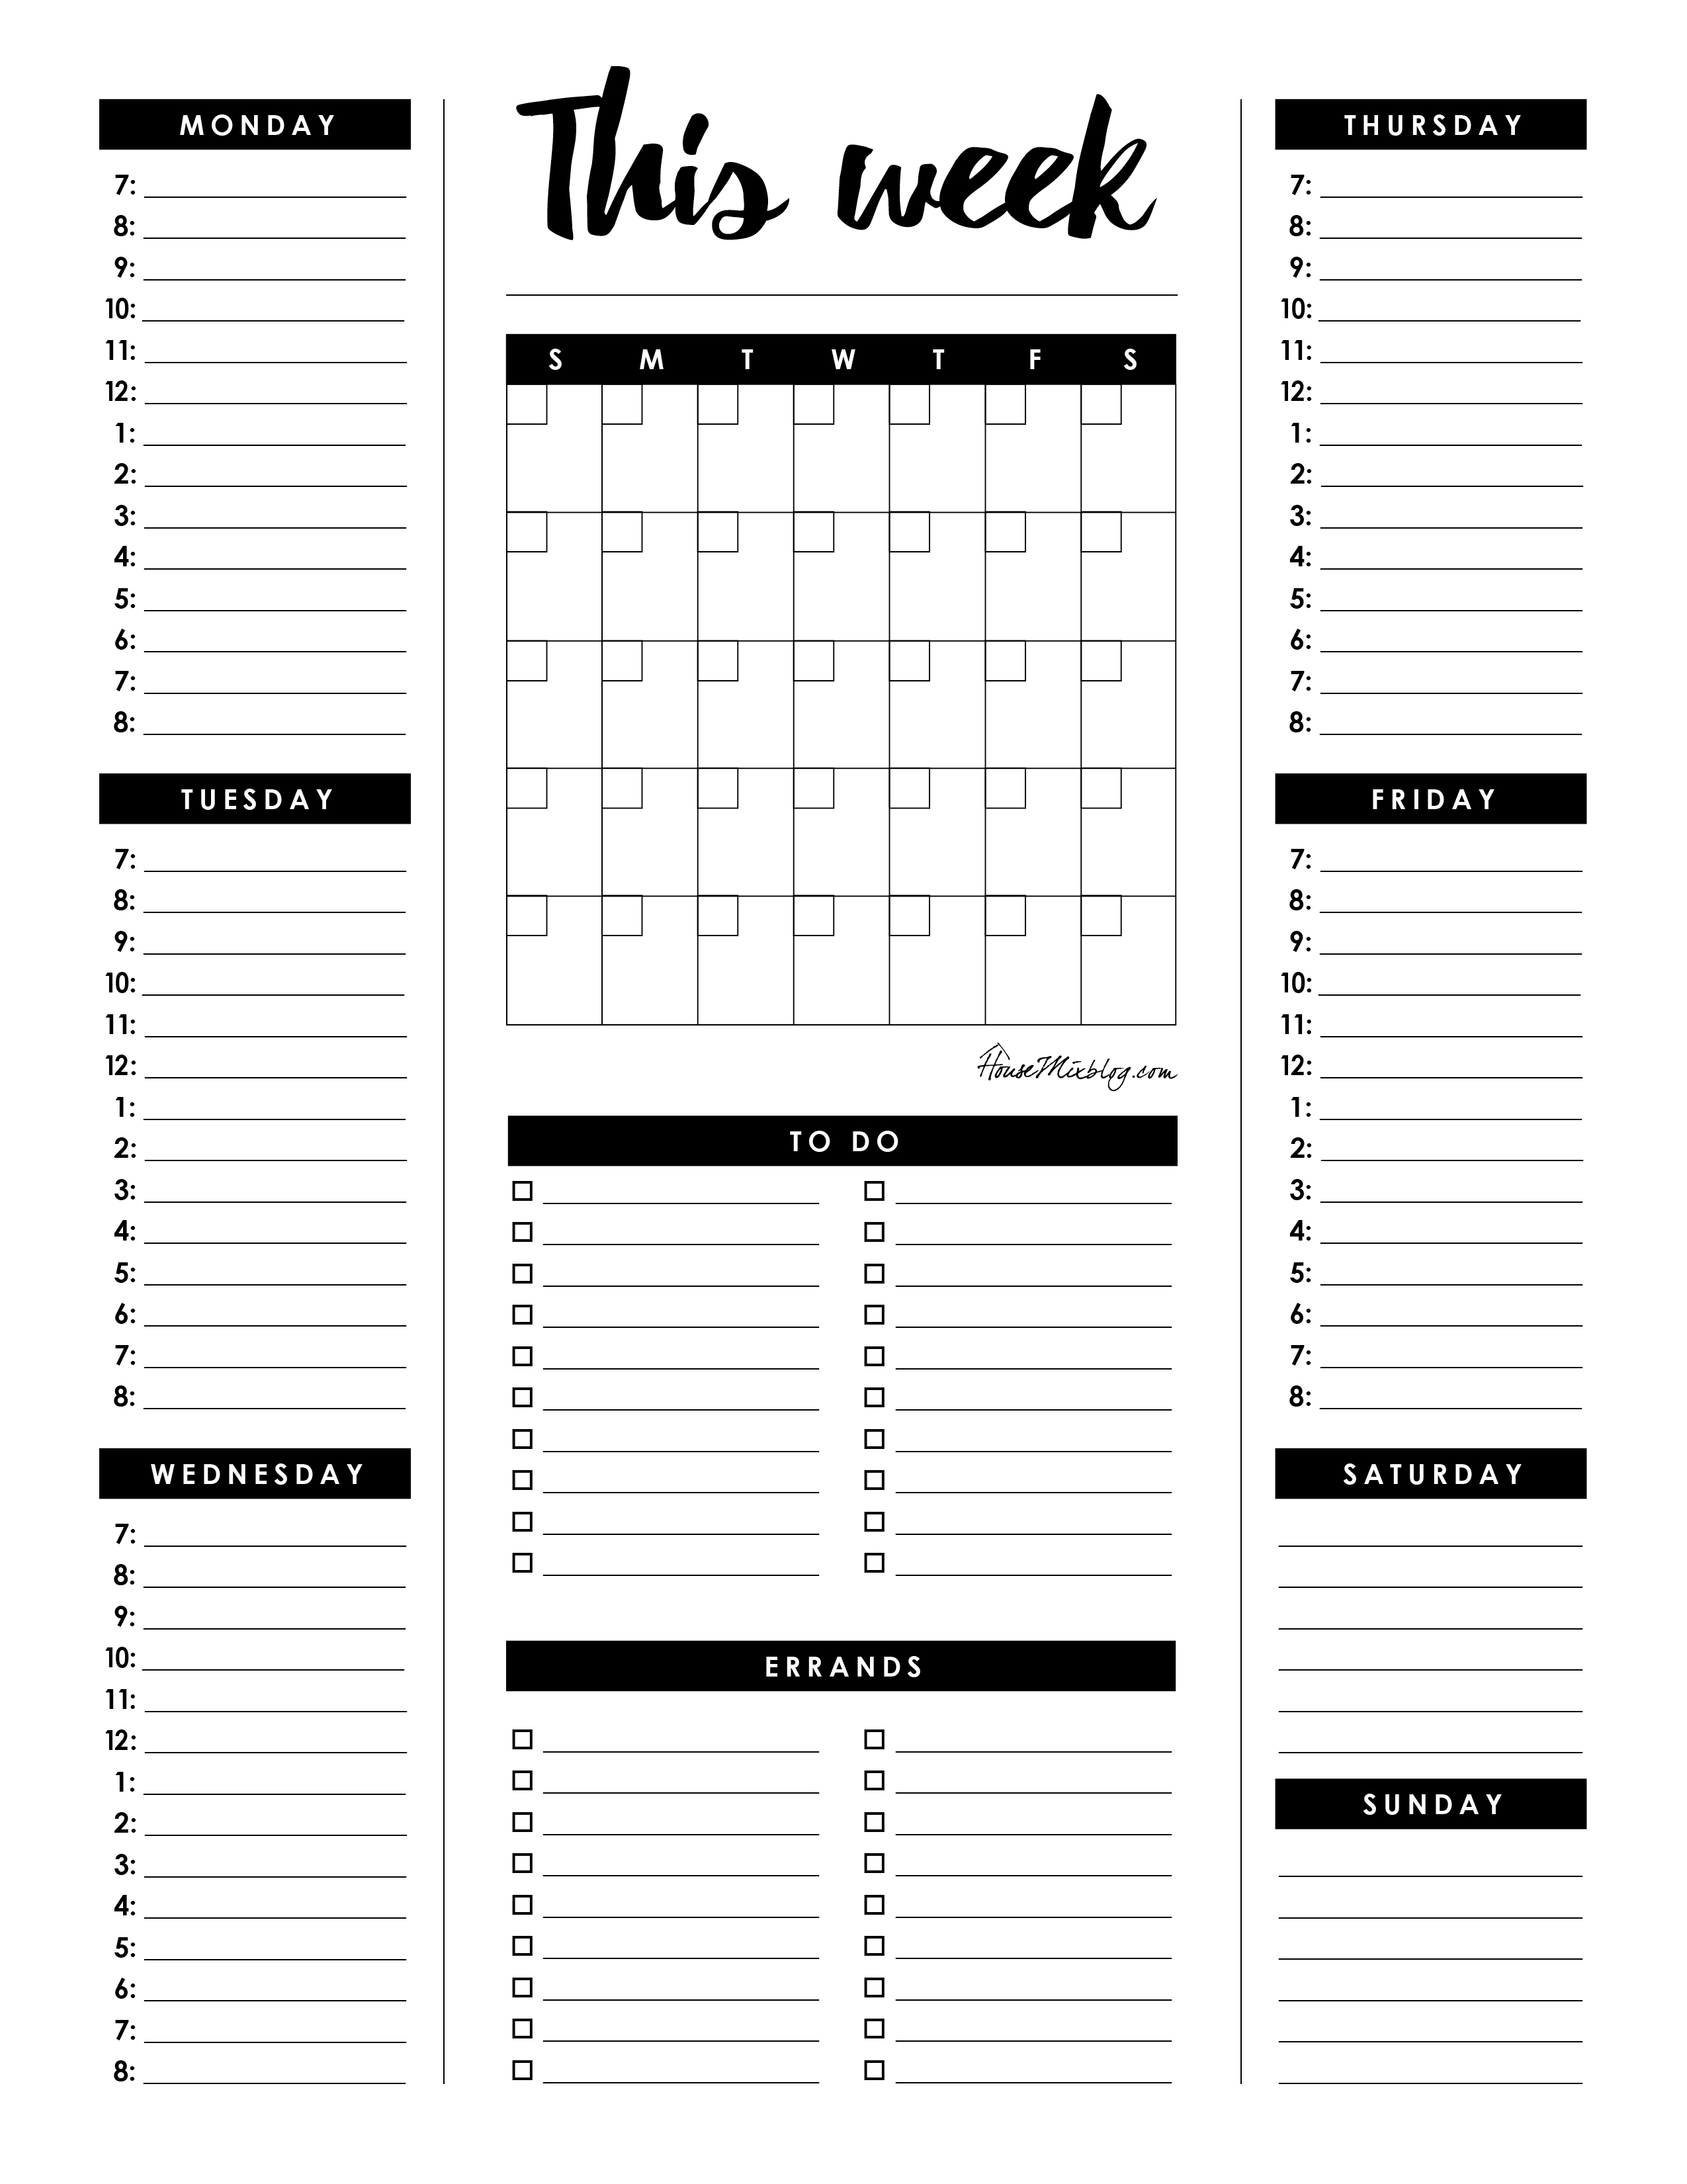 Weekly planner - month calendar, hourly itenerary, to do list and errands checklist